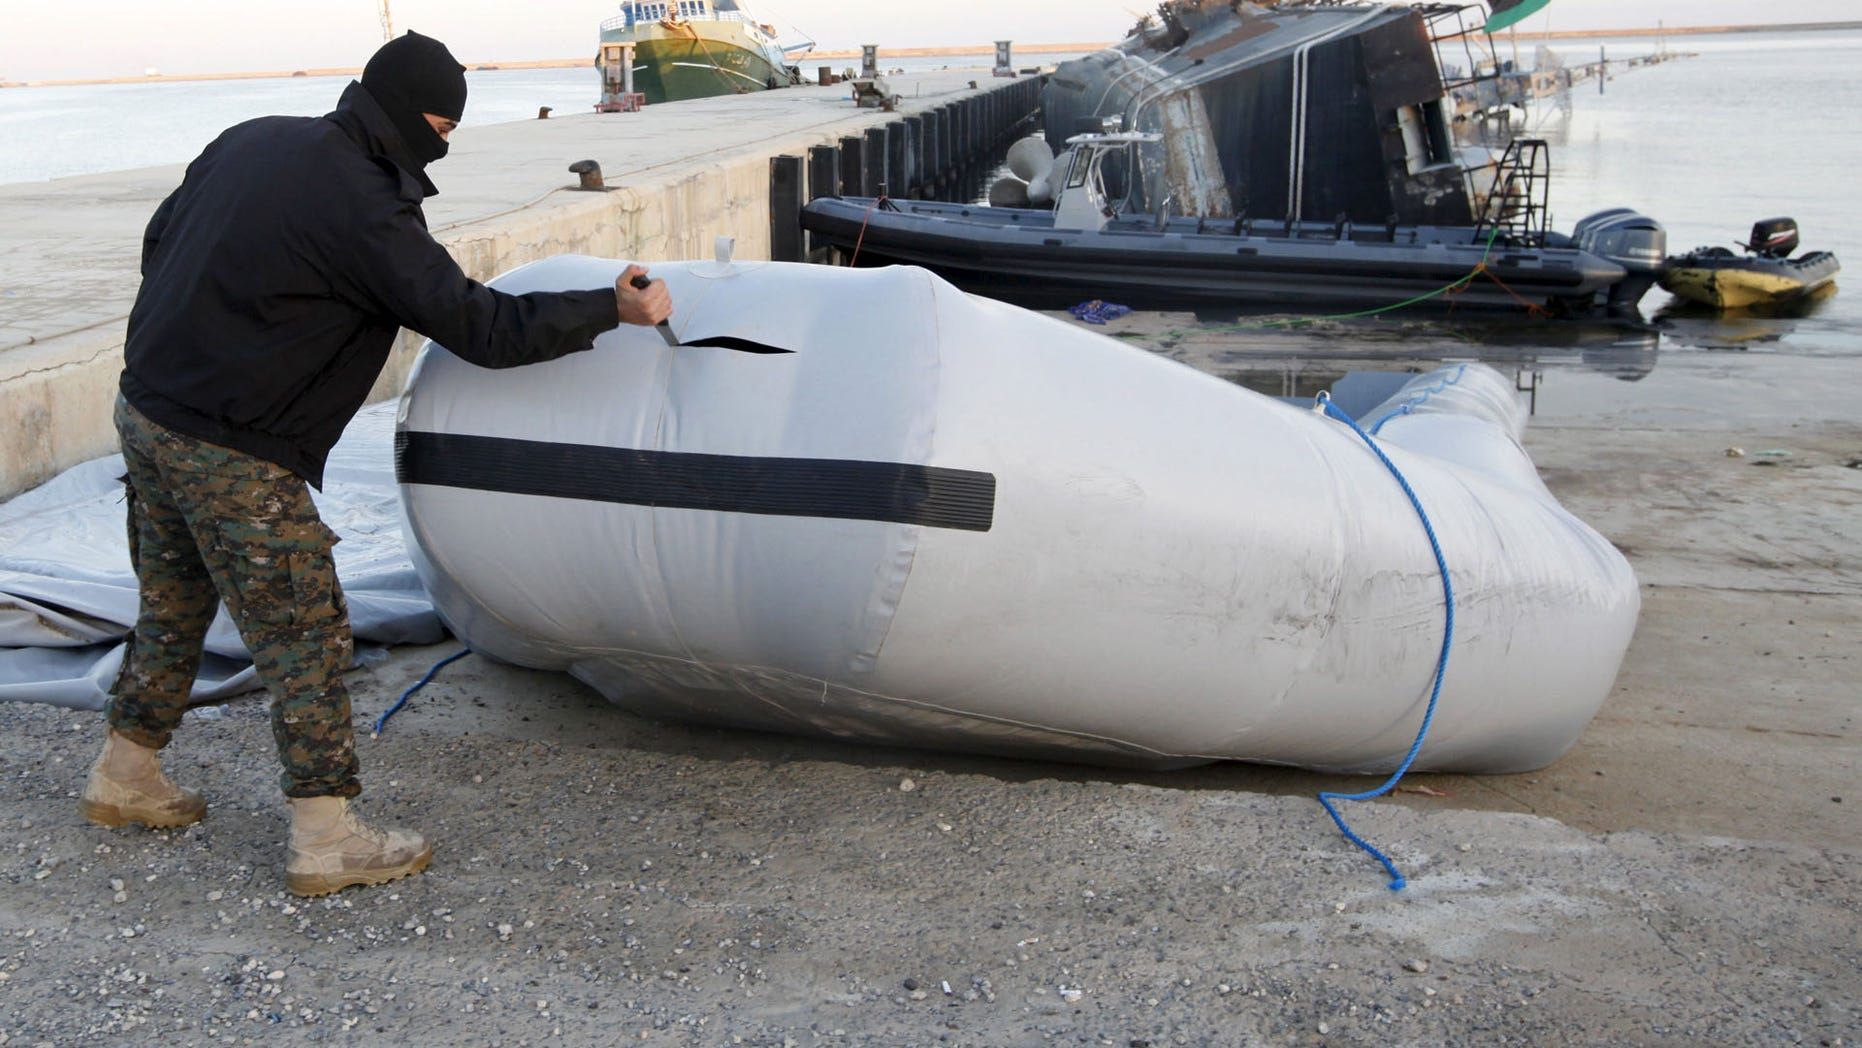 A member of the Libyan coast guard uses a knife to tear a dinghy used by migrants trying to escape to Europe last year.